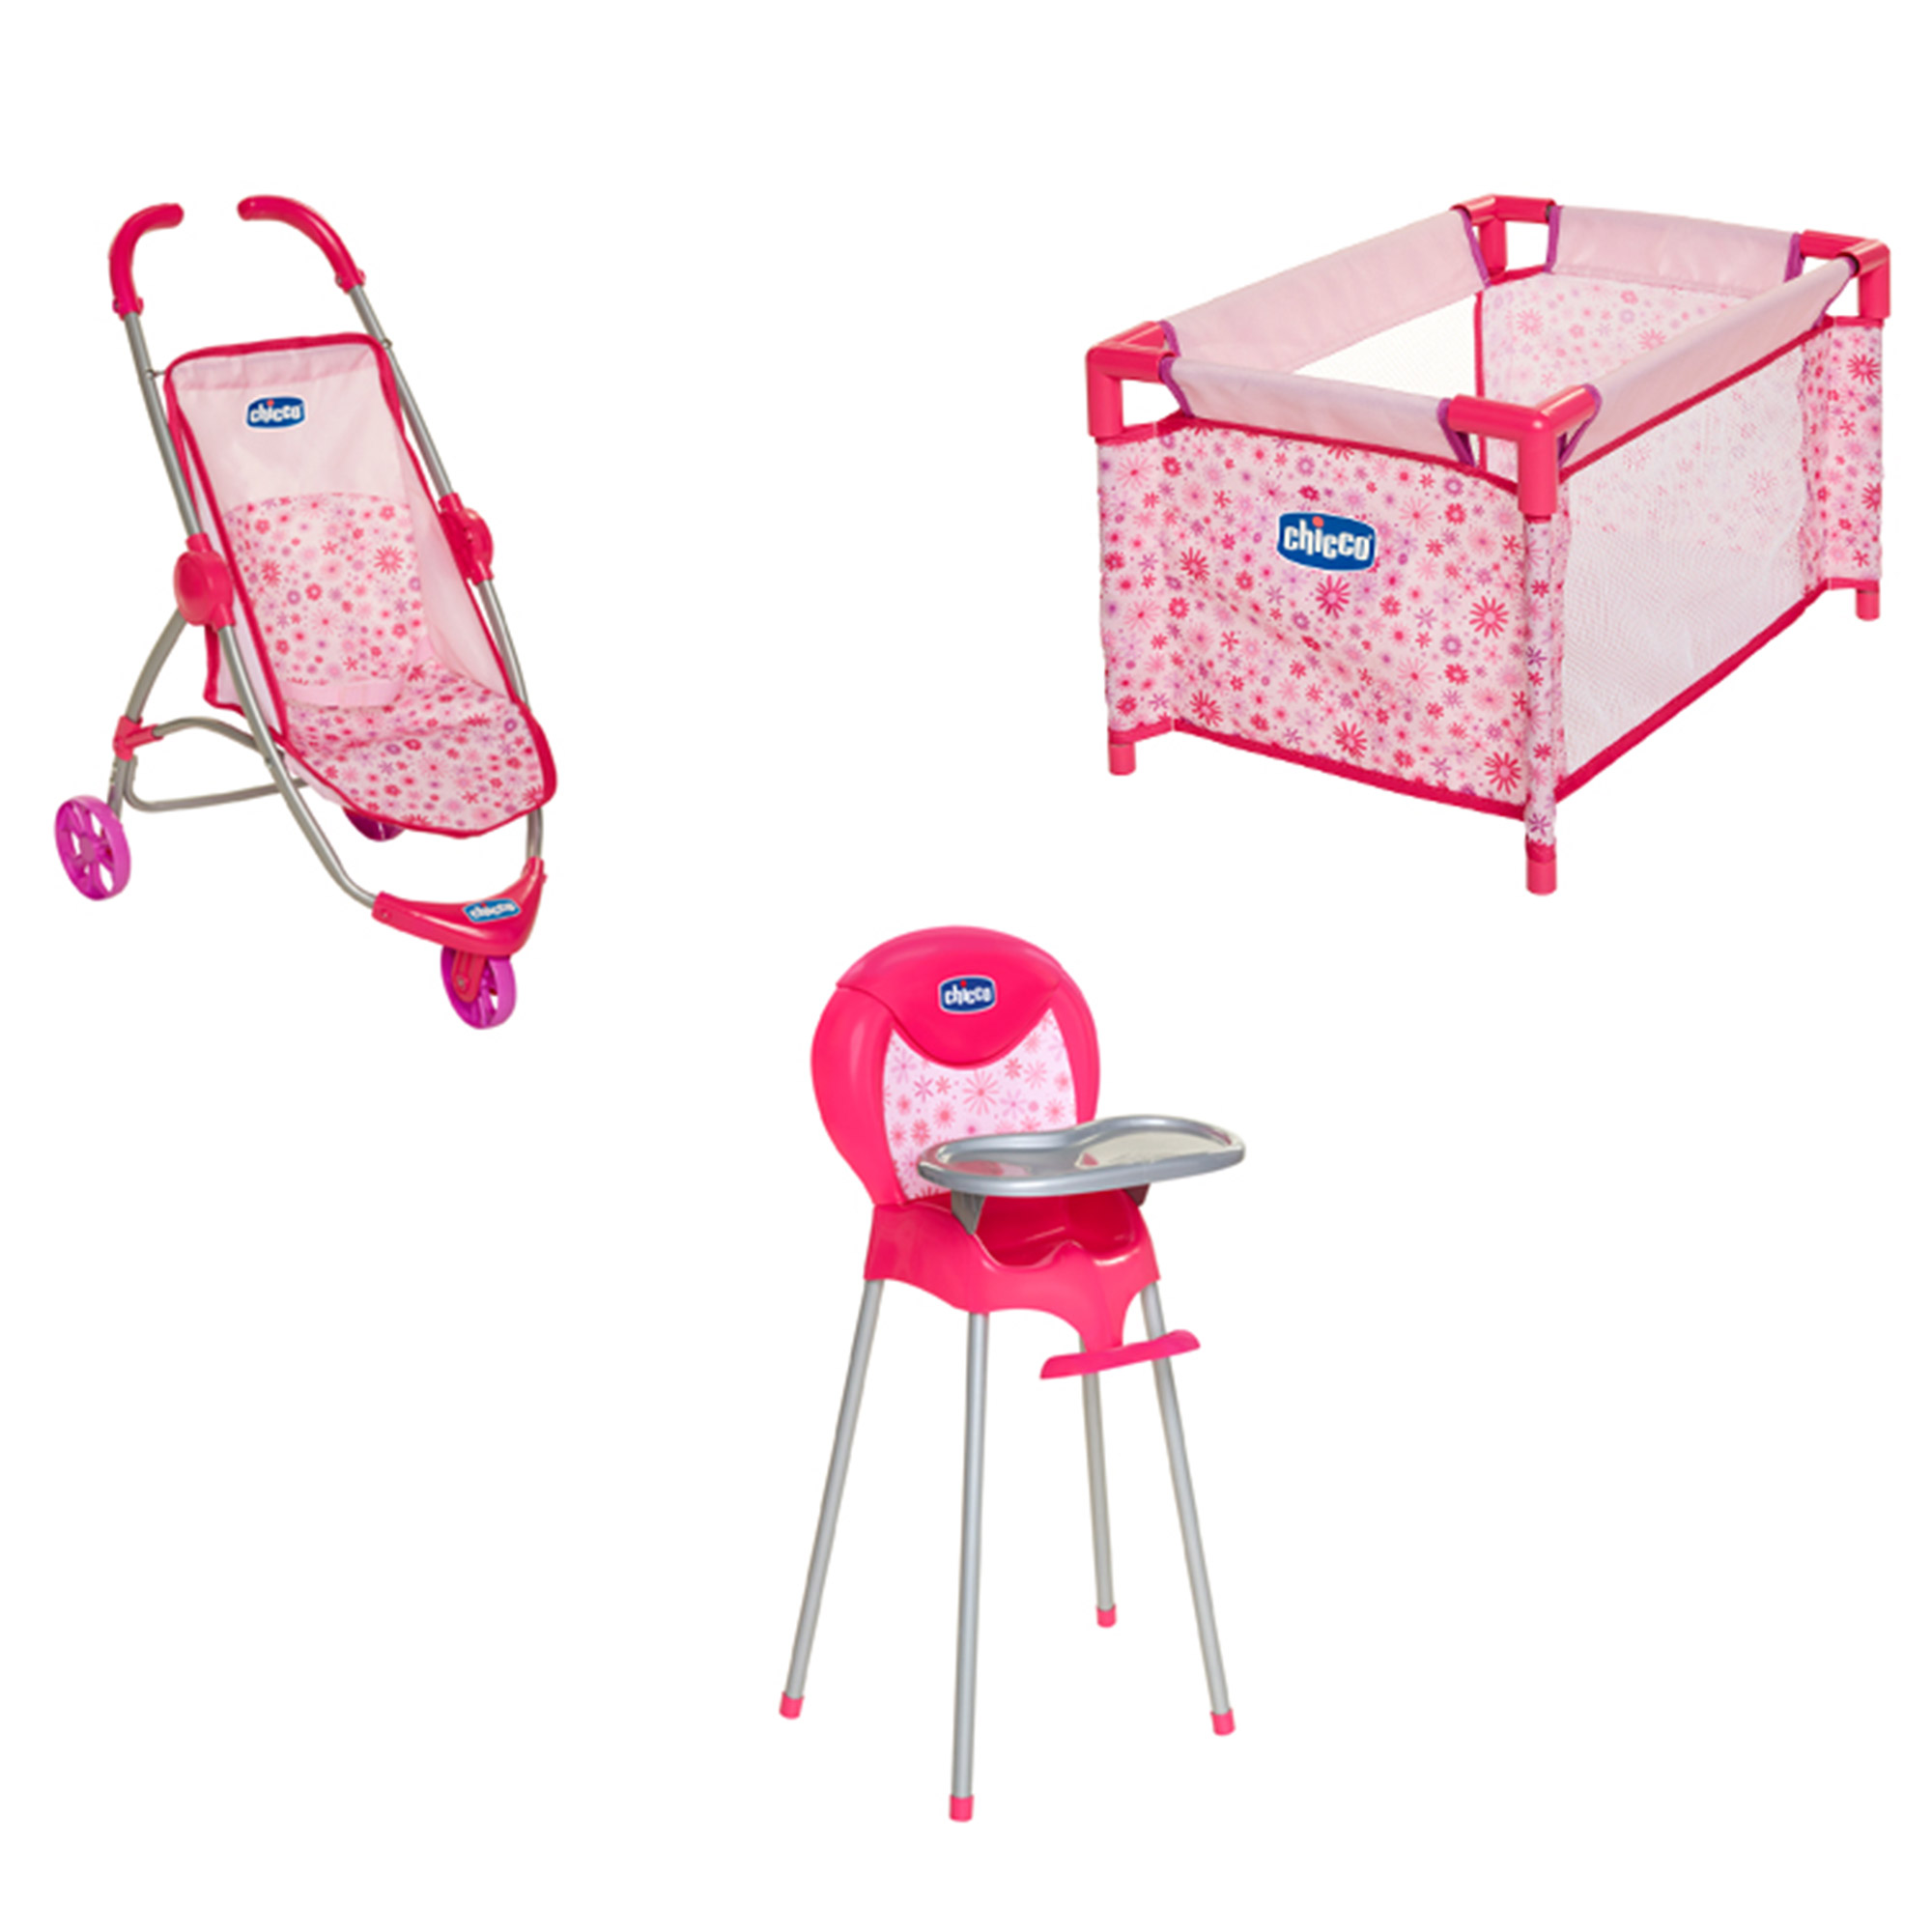 Chicco Baby Doll Nursery Time Fun Set